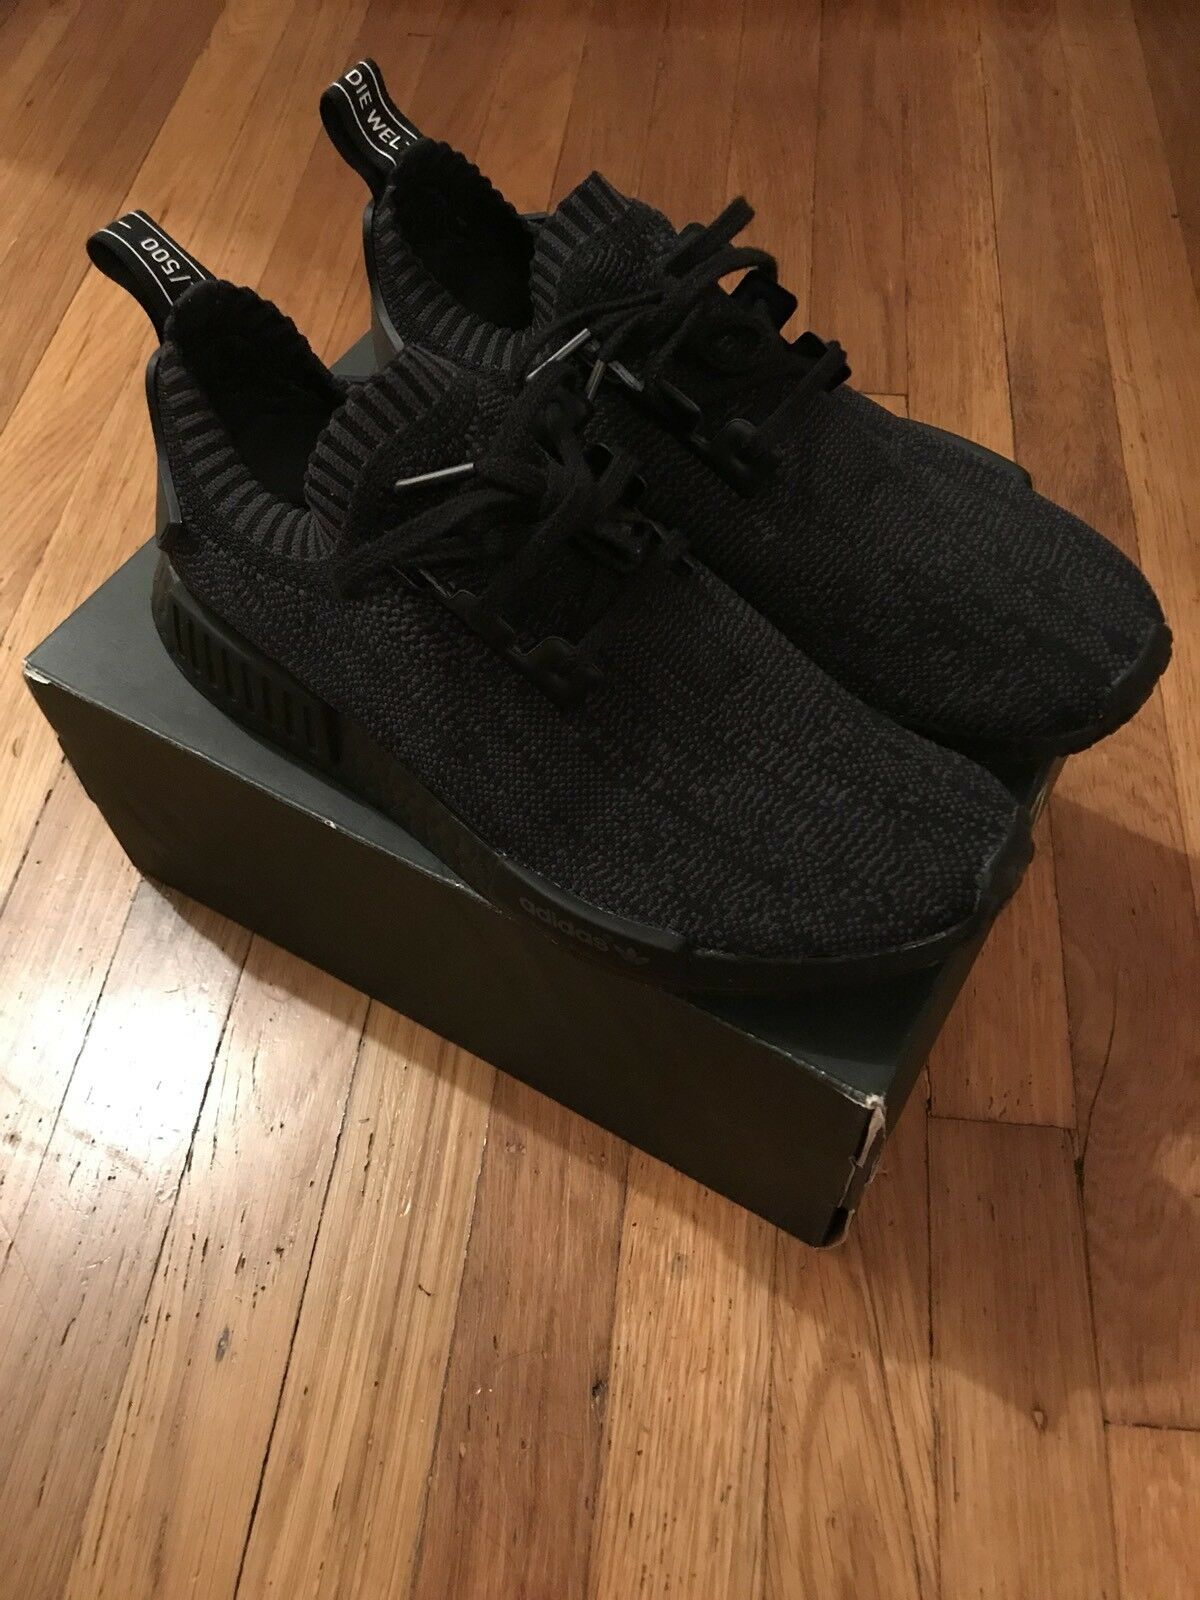 Adidas Nmd Amici Famiglia F & F Pitch 1 Nero 1 Pitch / 500 Sz 9 Limitata Raro P / Box 4be177